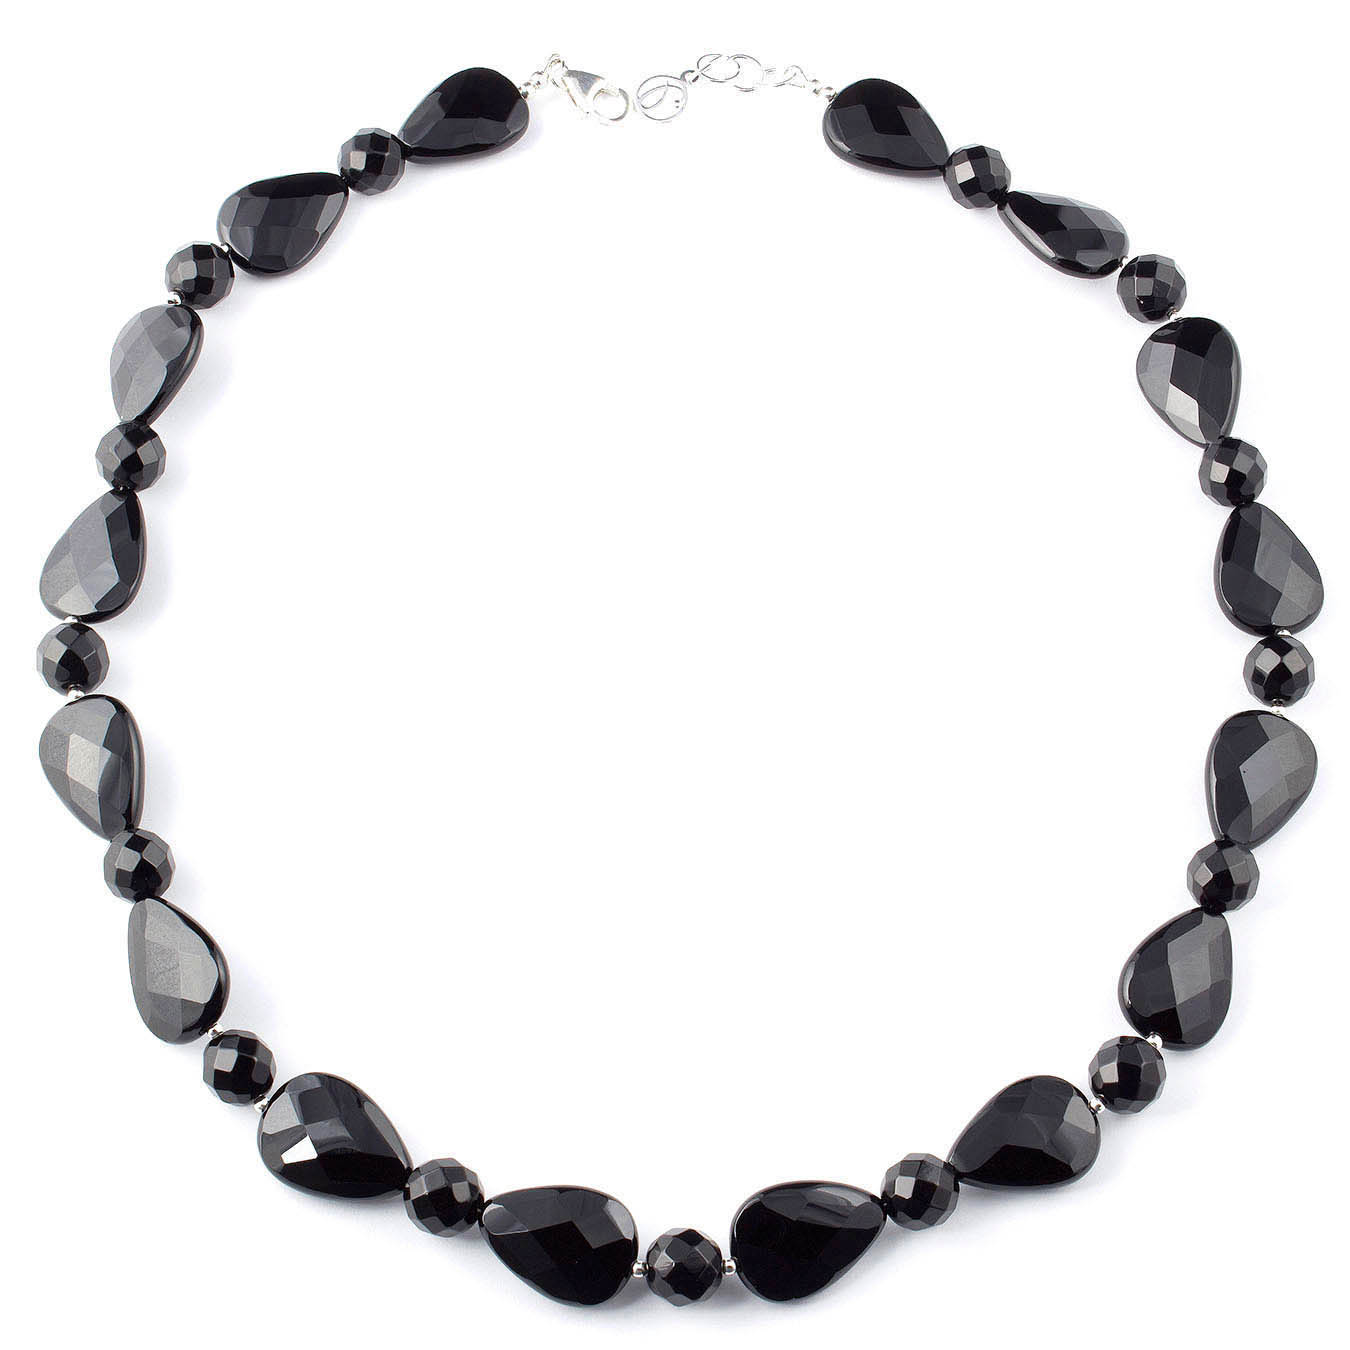 Handcrafted choker style bead necklace made with faceted black agate